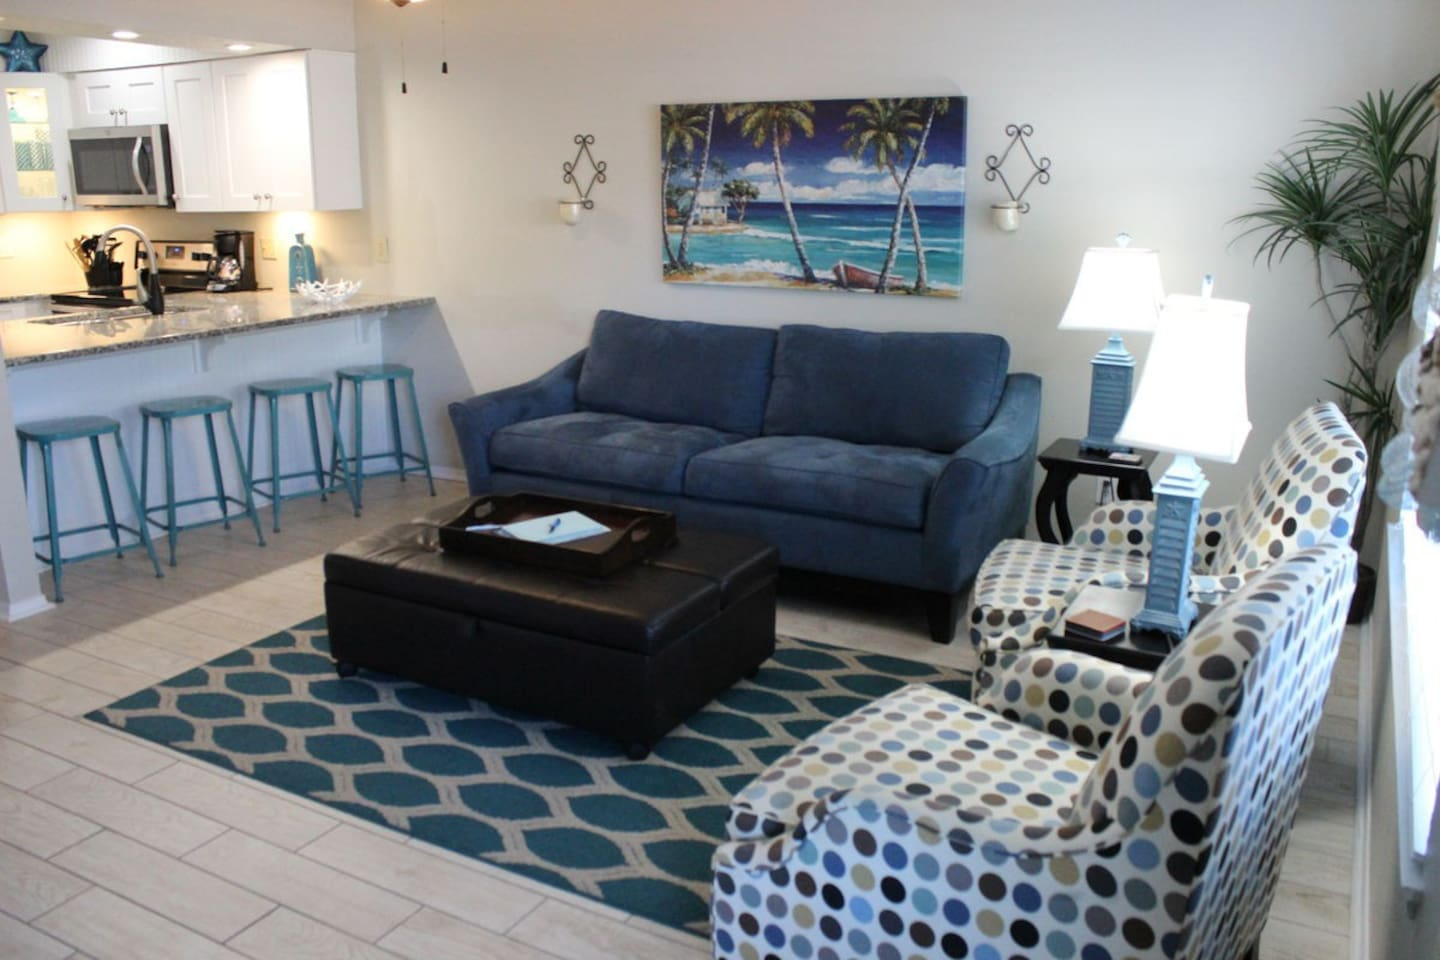 Sit back and relax in this charming and comfy living area with new sleeper sofa. The ottoman also folds into a twin sleeper for a small child.